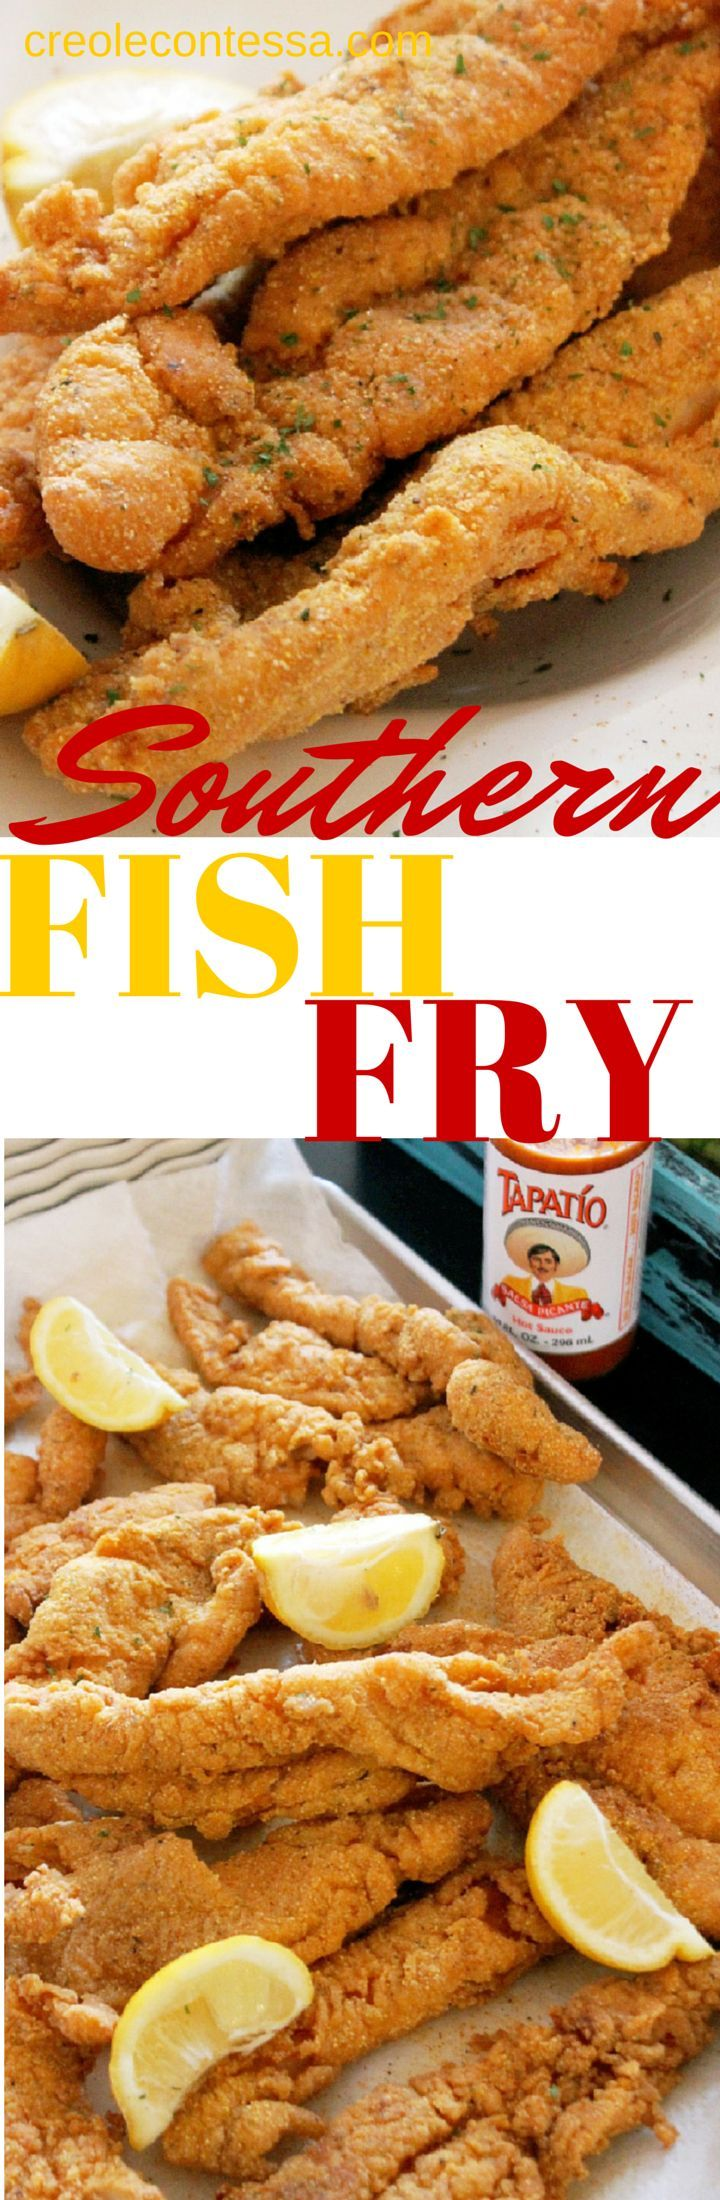 Southern Fish Fry!   Pin now, try later!